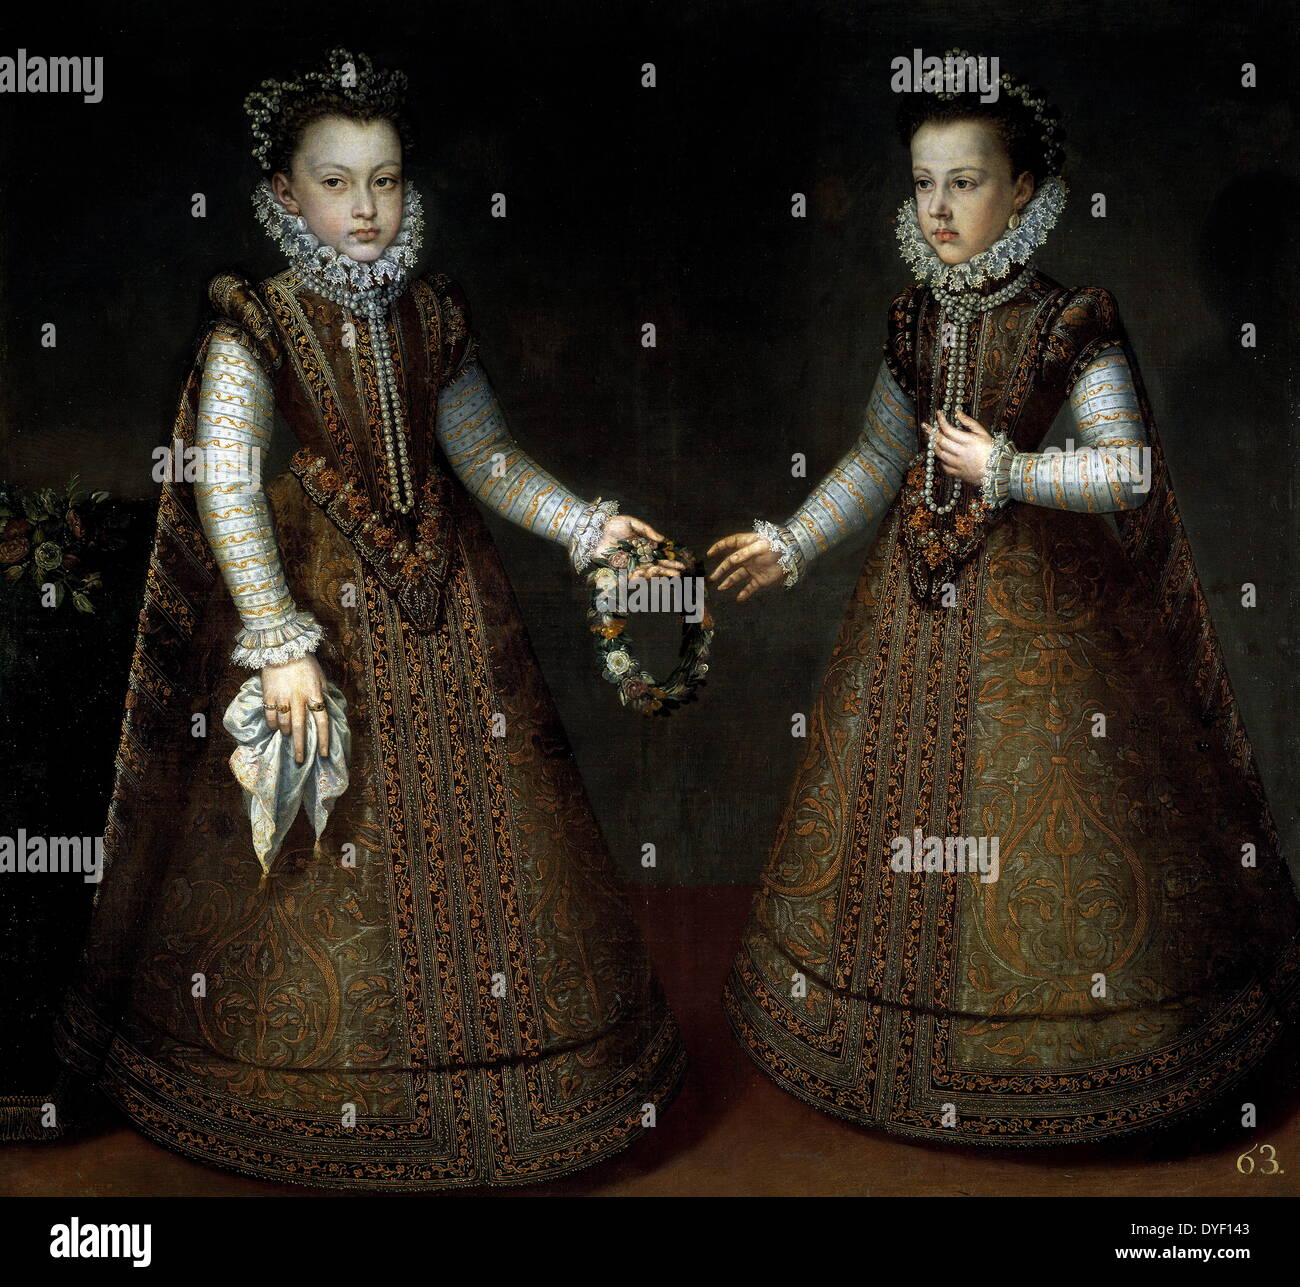 Painting by Alonso Sánchez Coello of Isabella Clara Eugenia of Austria and Catherine Michelle of Spain as infants. - Stock Image